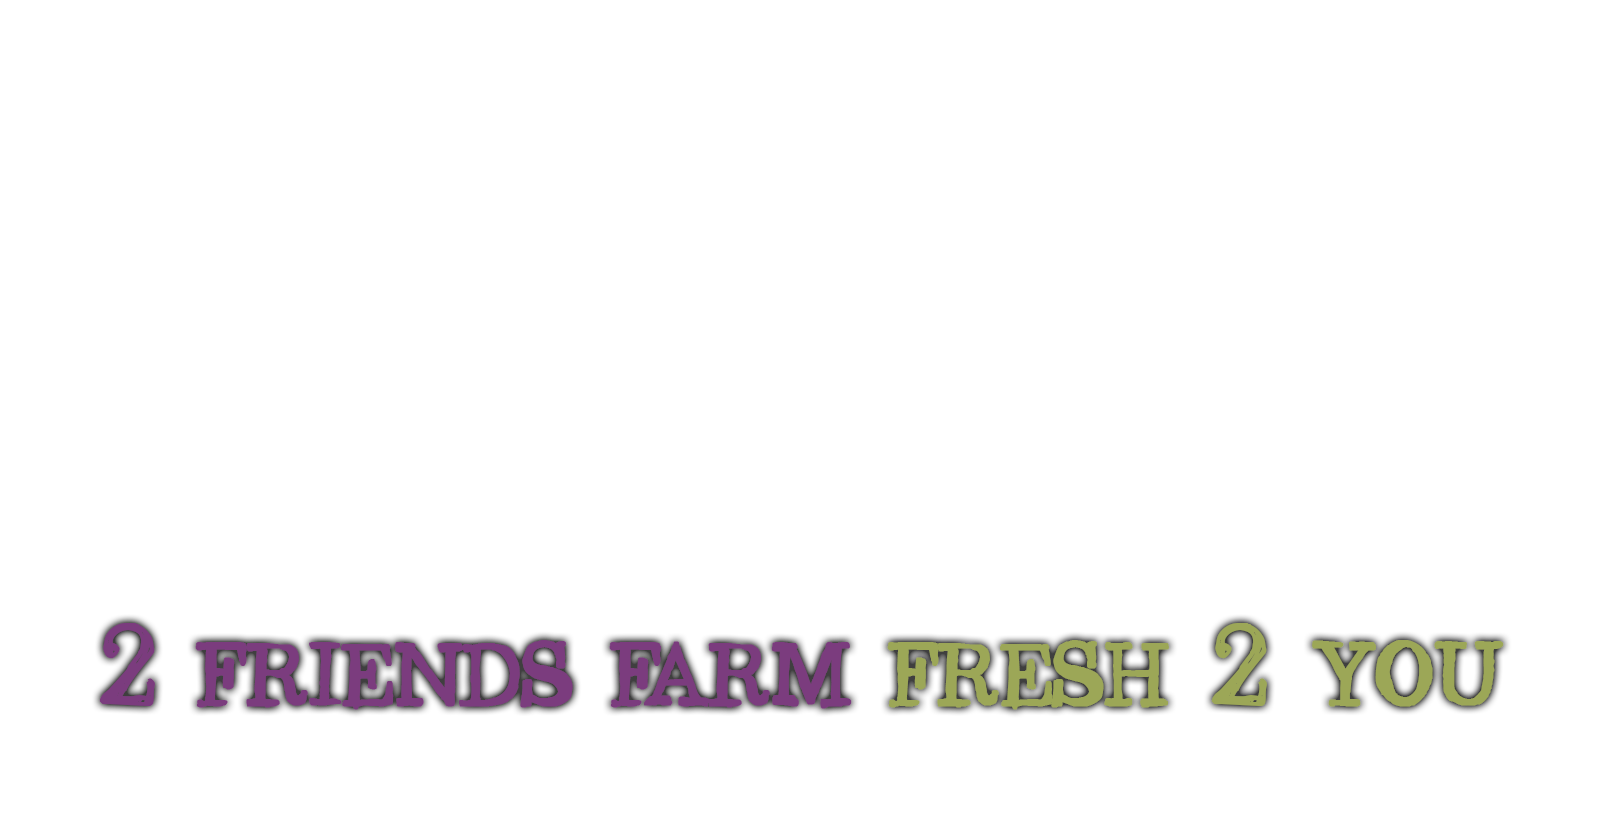 Fresh 2 you organic food home delivery organic microgreens wheatgrass herbs